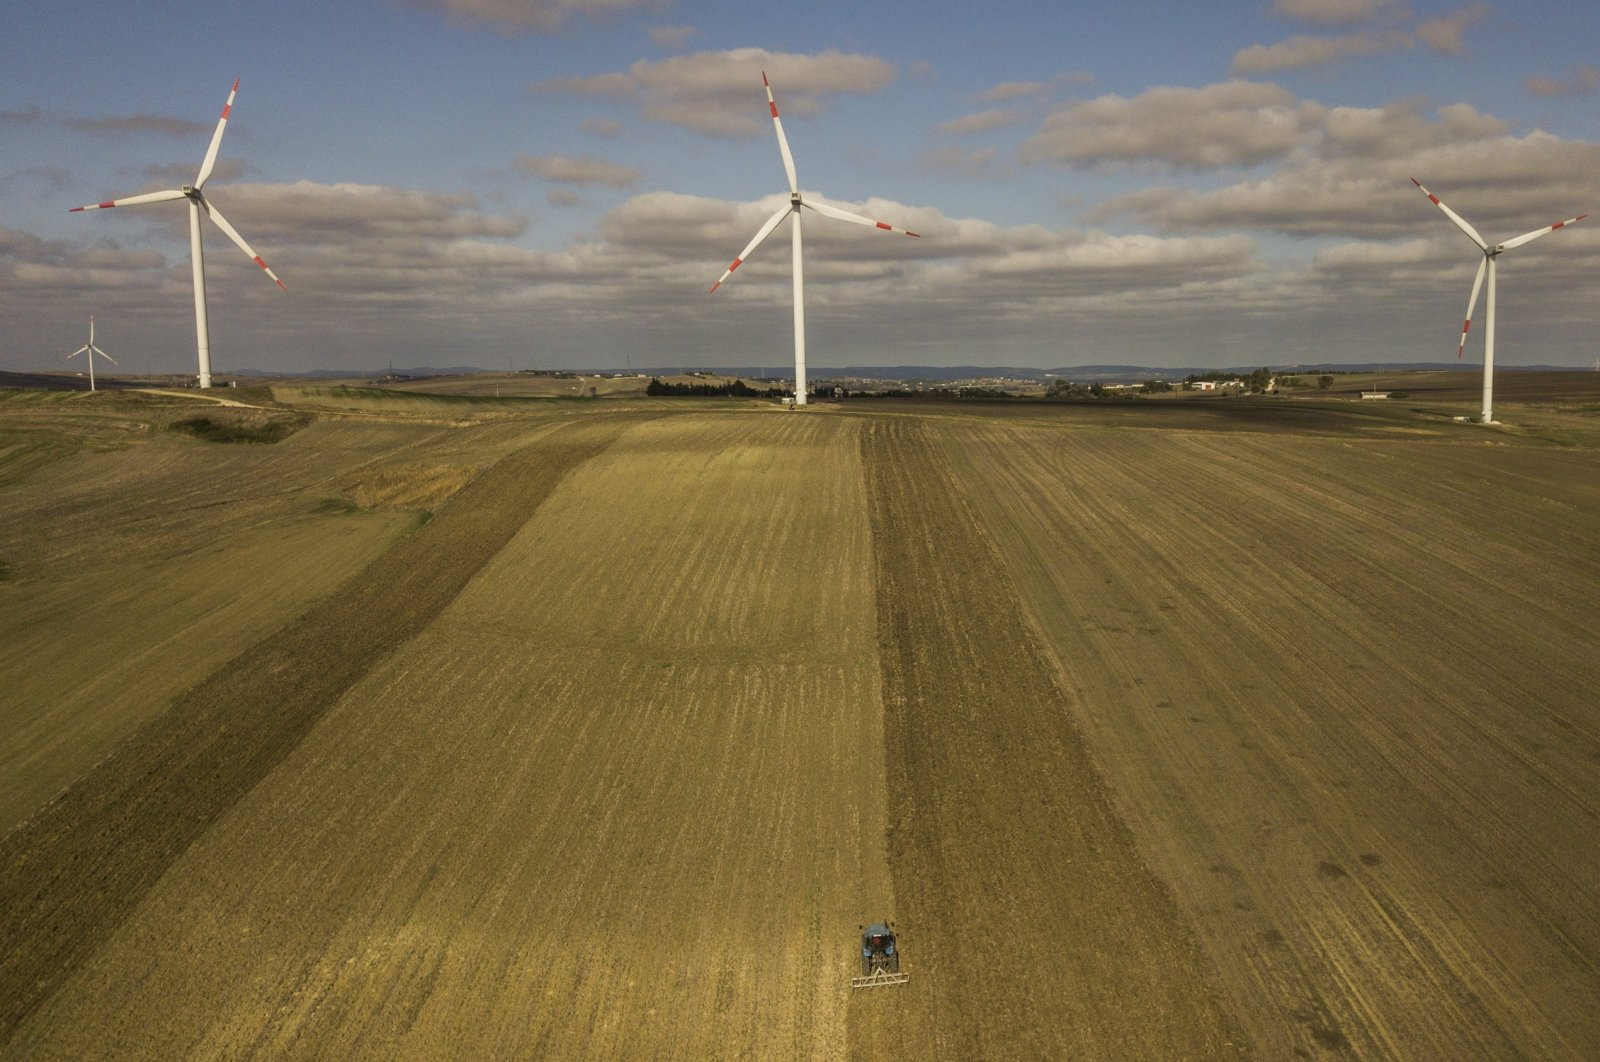 An aerial view taken by a drone shows wind turbines in the countryside of Istanbul, Turkey, Oct. 22, 2020. (EPA File Photo)